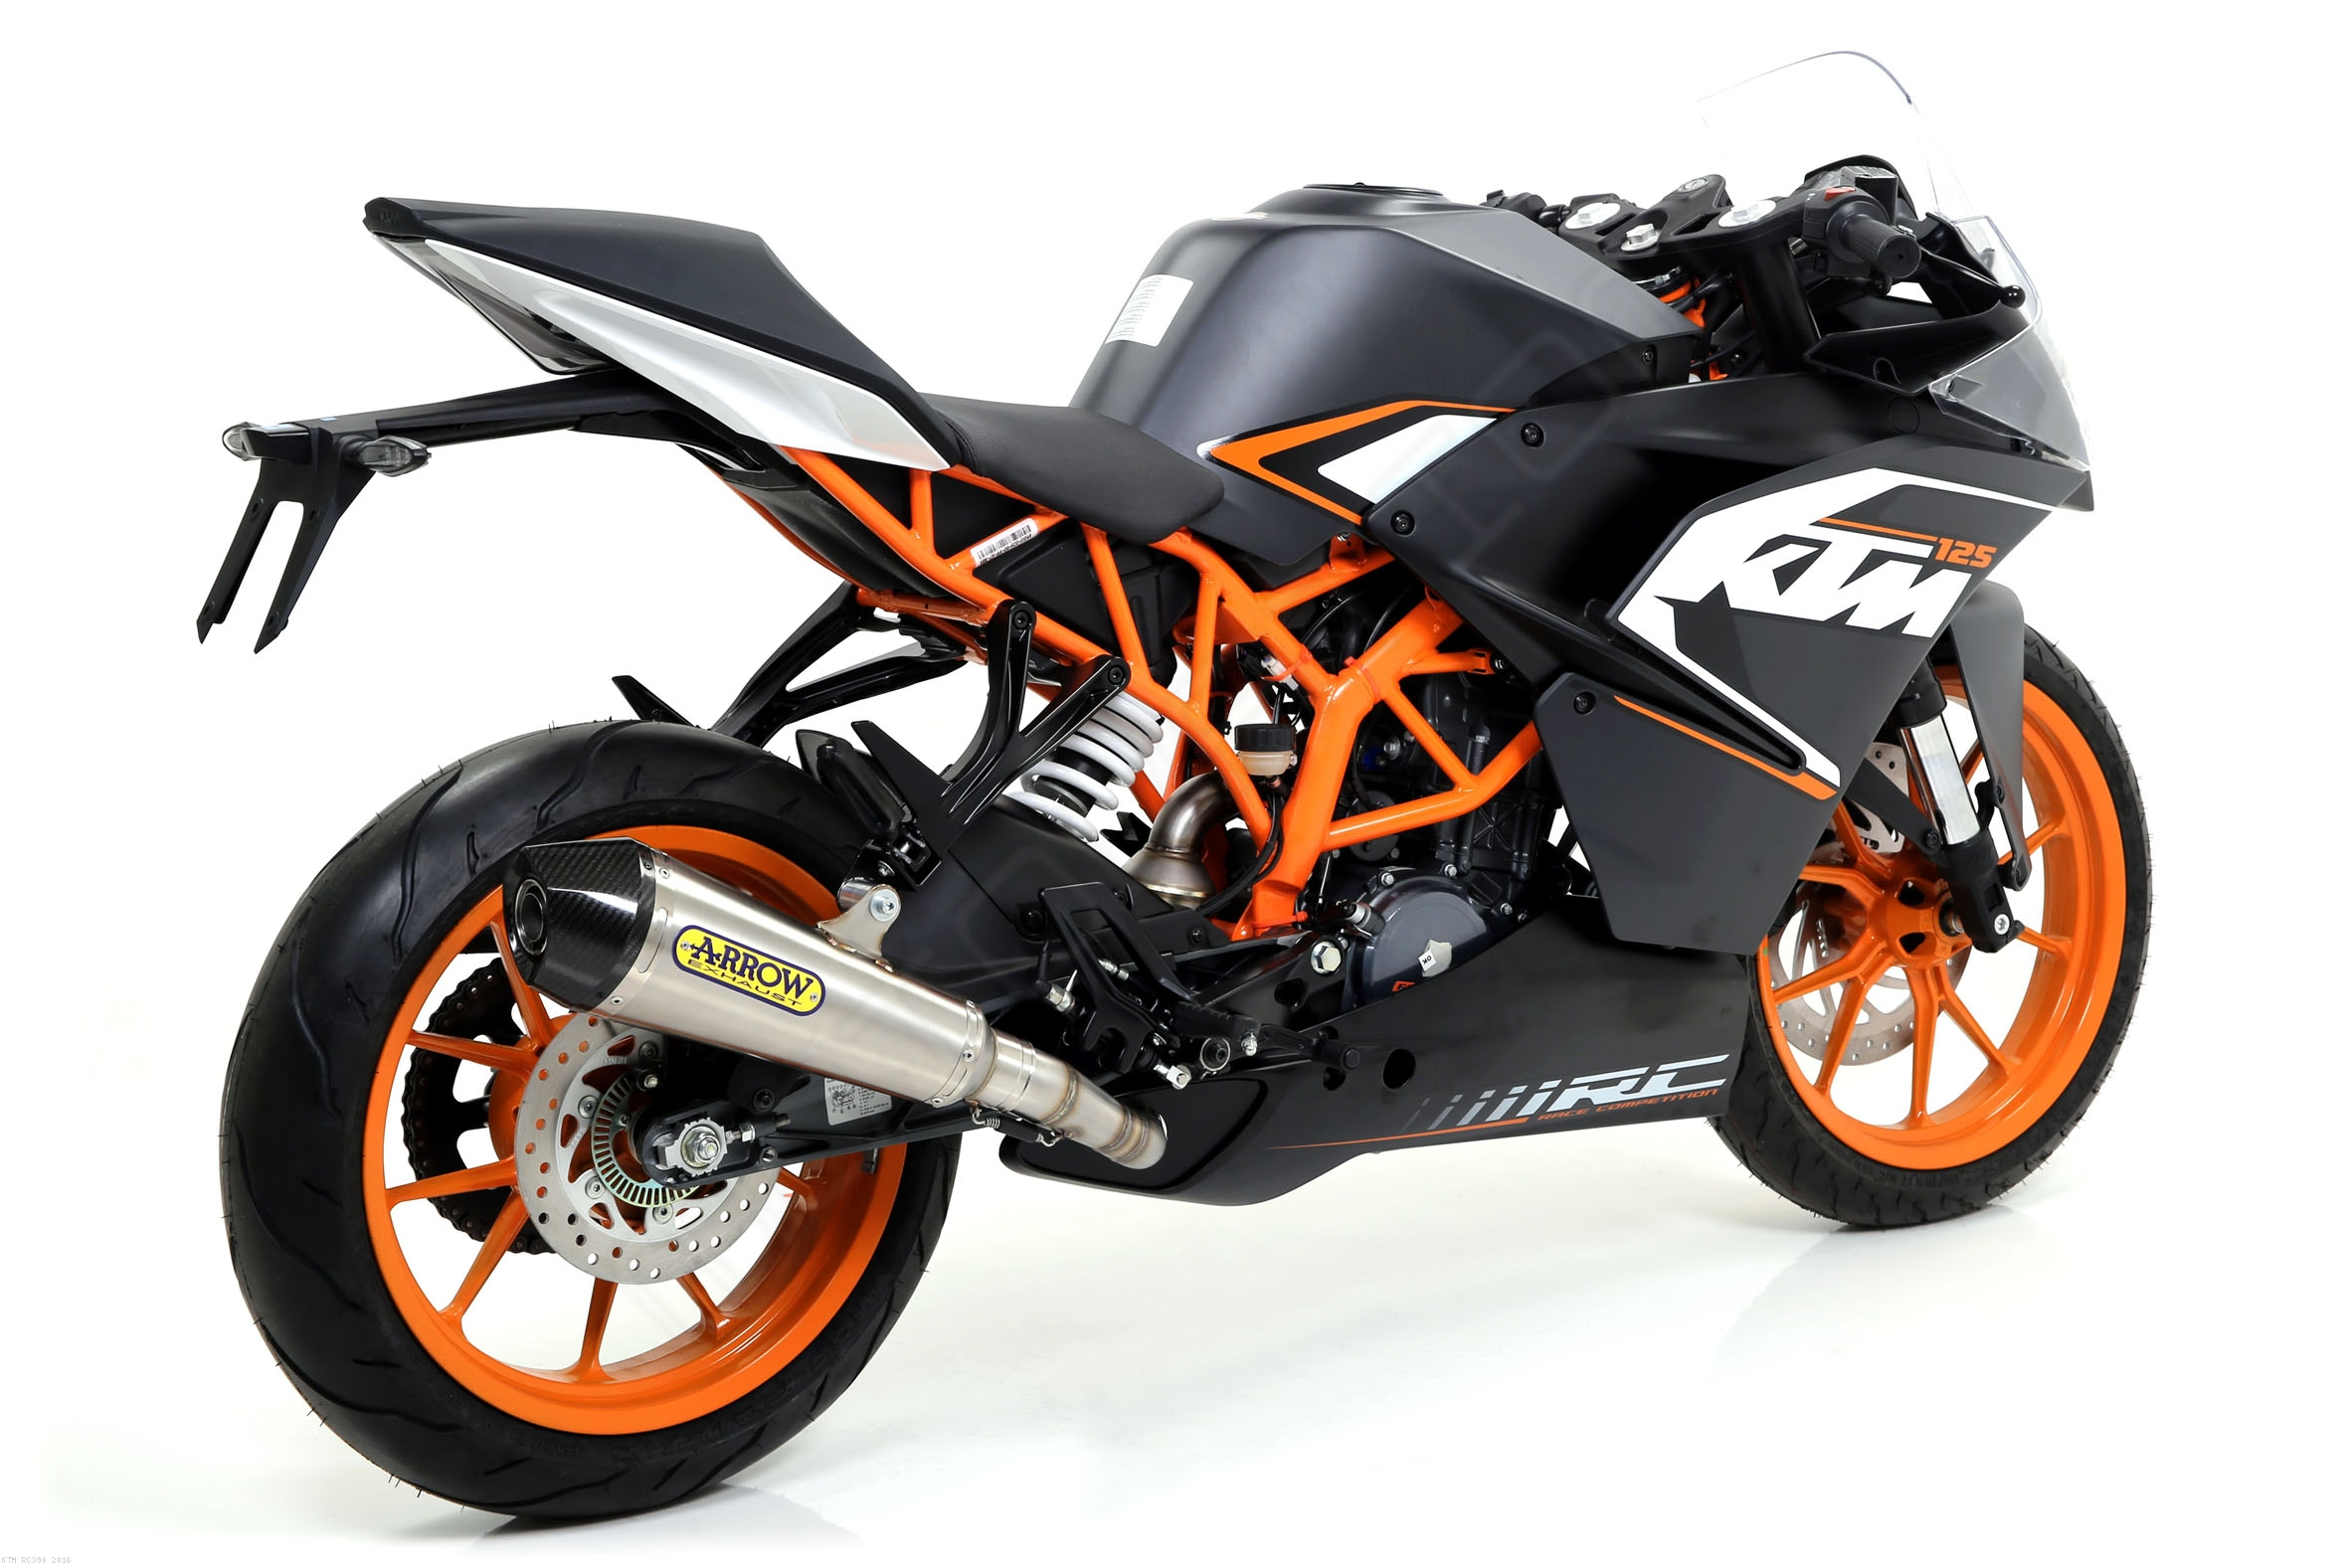 arrow x cone slip on exhaust ktm rc390 2016 71813xki. Black Bedroom Furniture Sets. Home Design Ideas